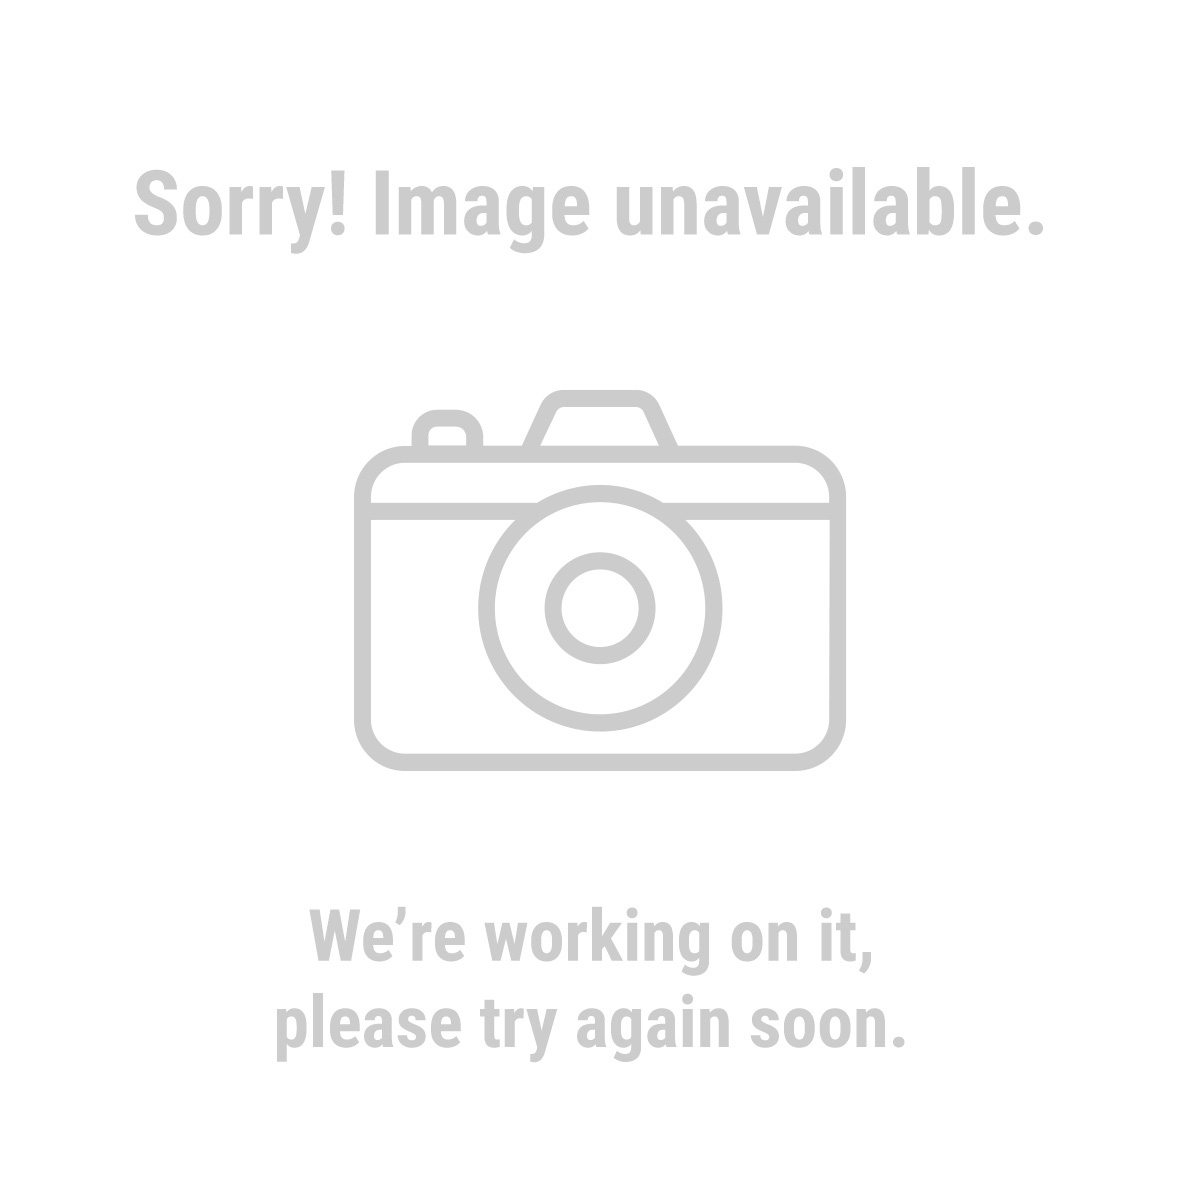 Harbor Freight Tools 92046 Self-Centering Drill Press Jig